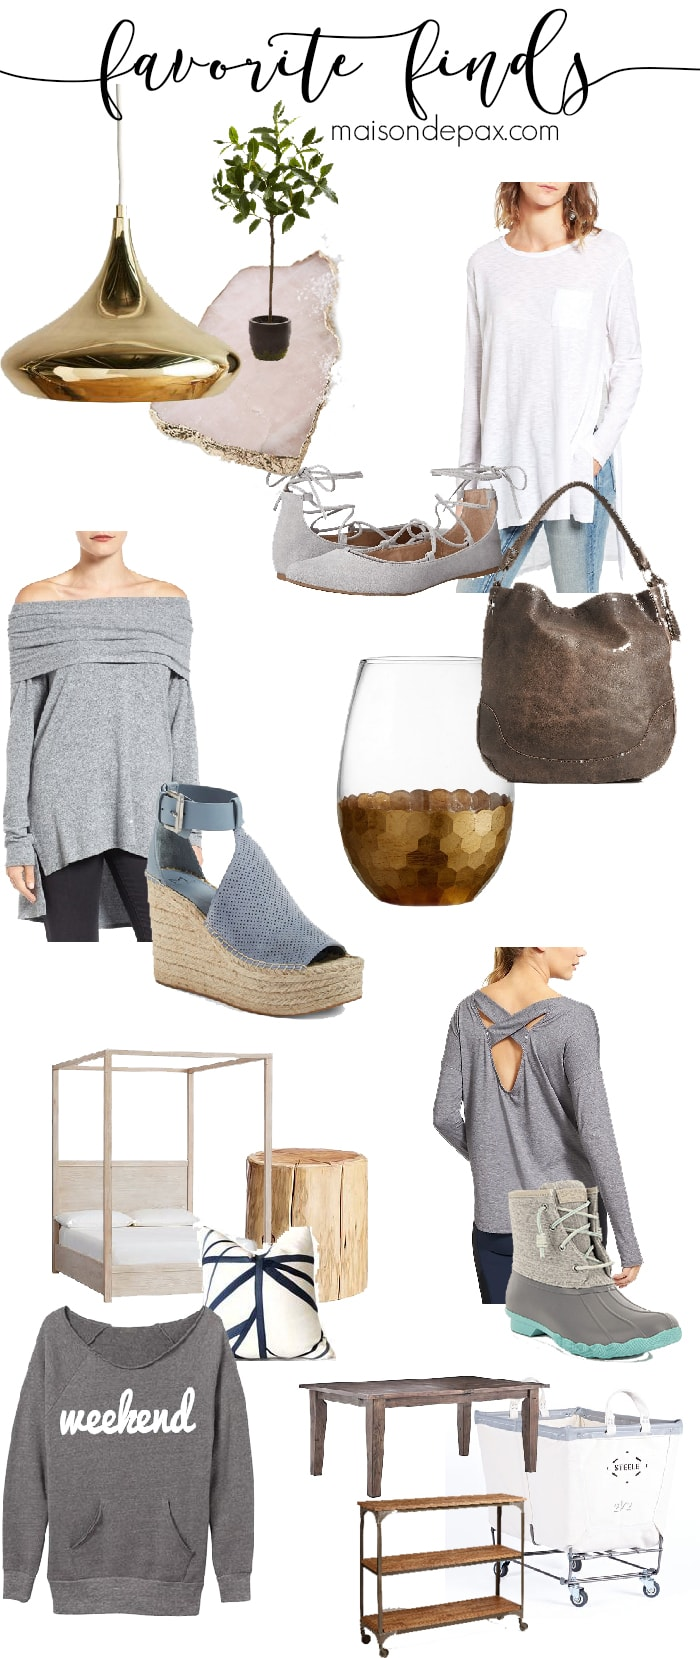 Casually elegant items and accessories for fashion, home decor, and more!